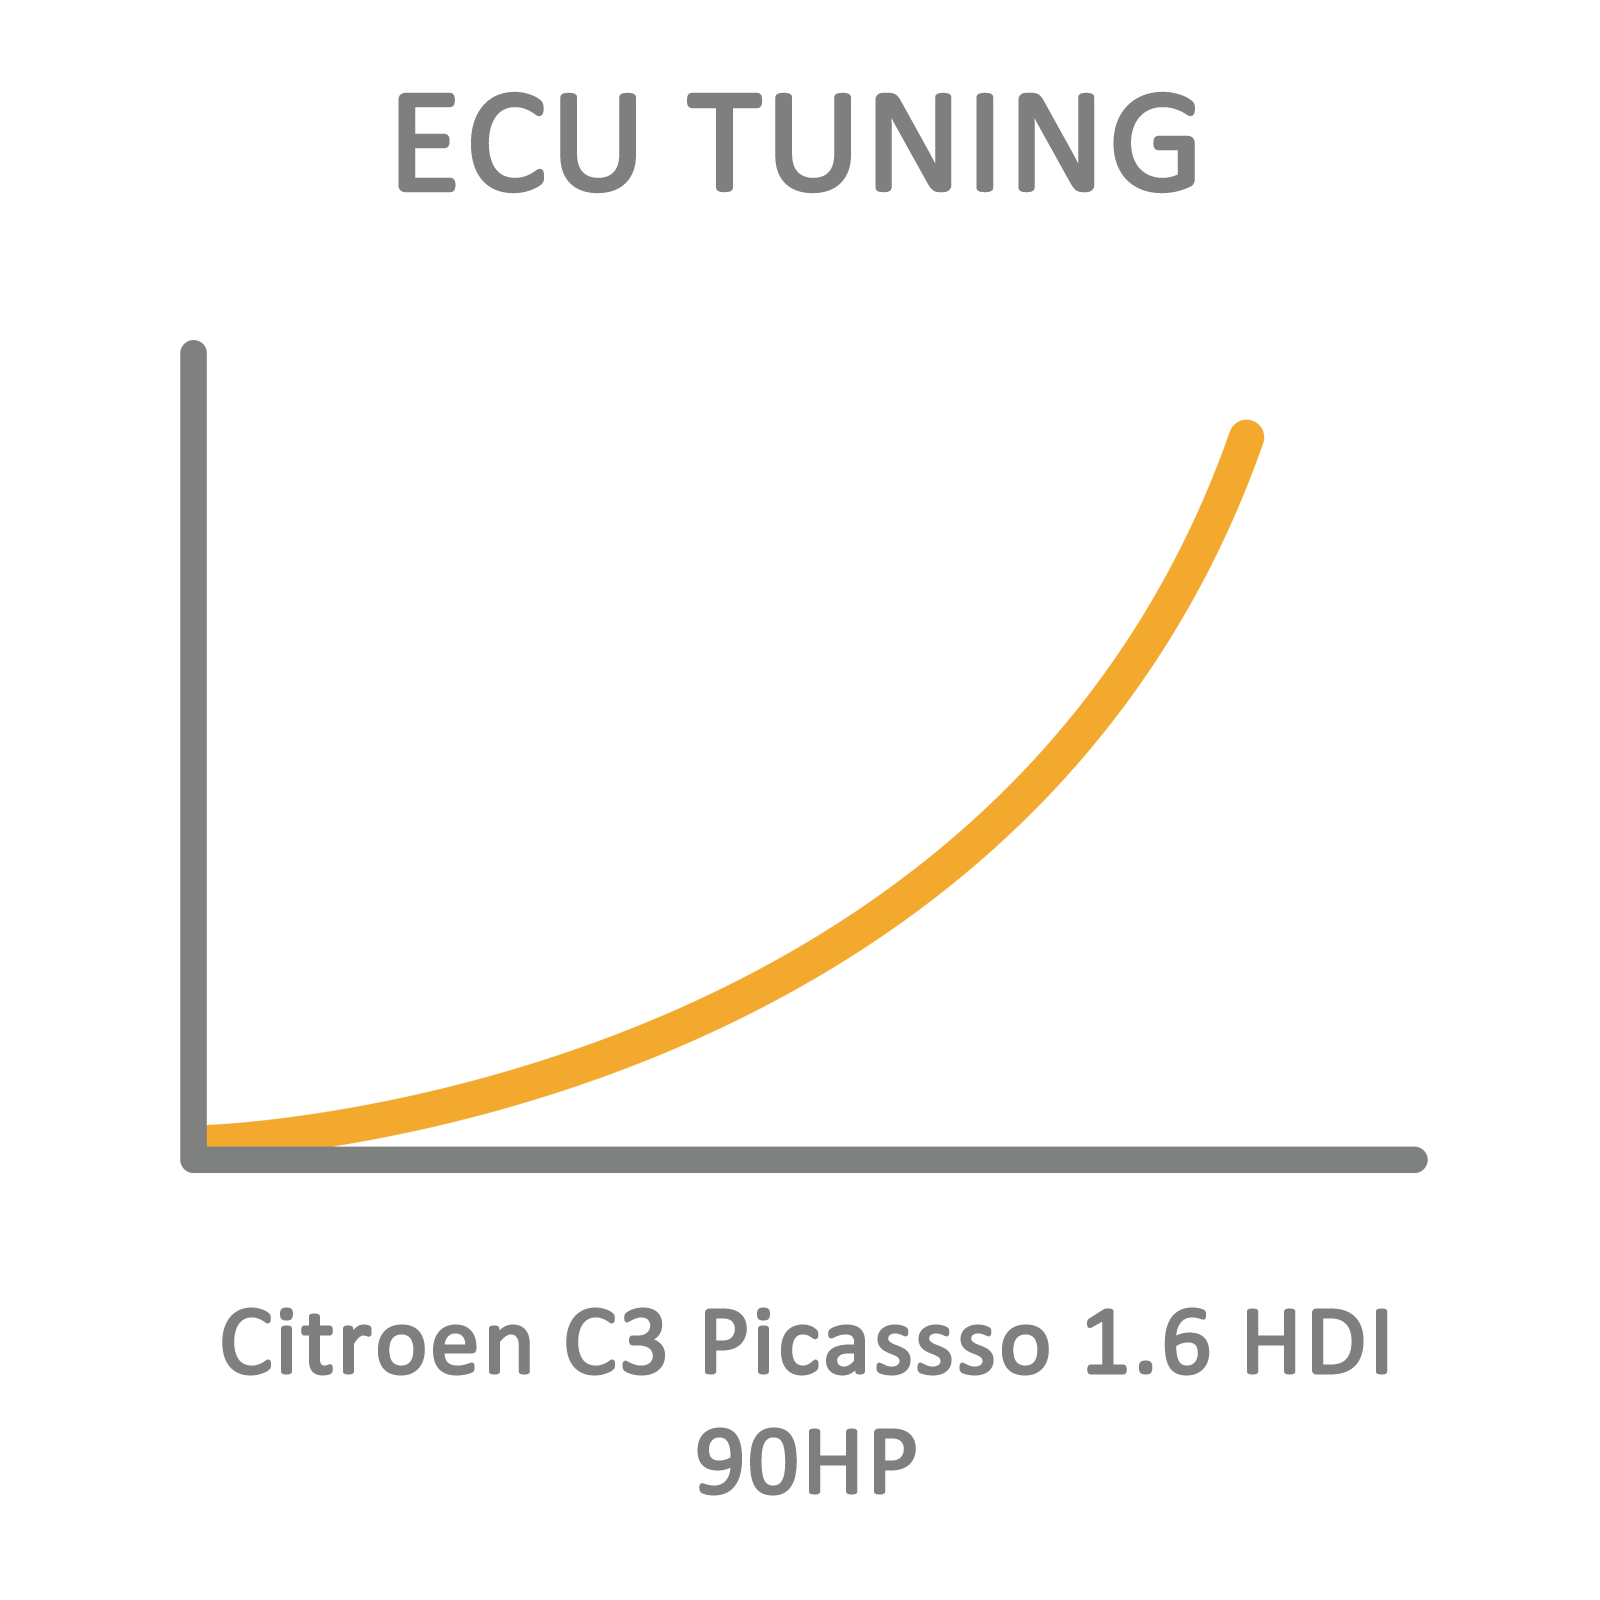 Citroen C3 Picassso 1.6 HDI 90HP ECU Tuning Remapping